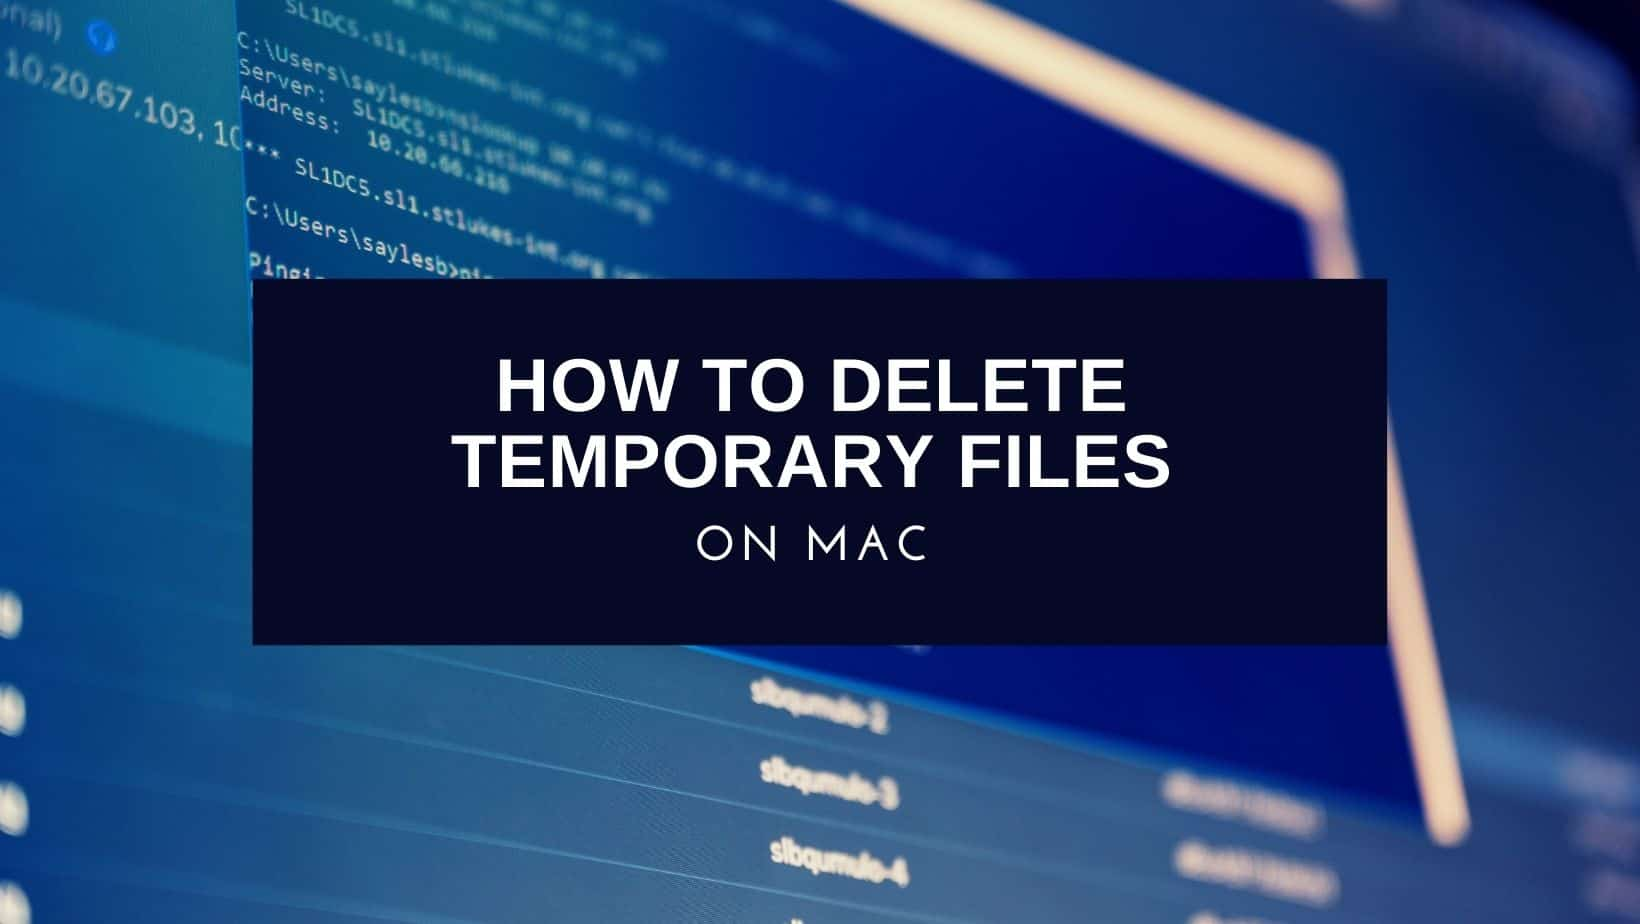 How to Delete Temporary Files on Mac